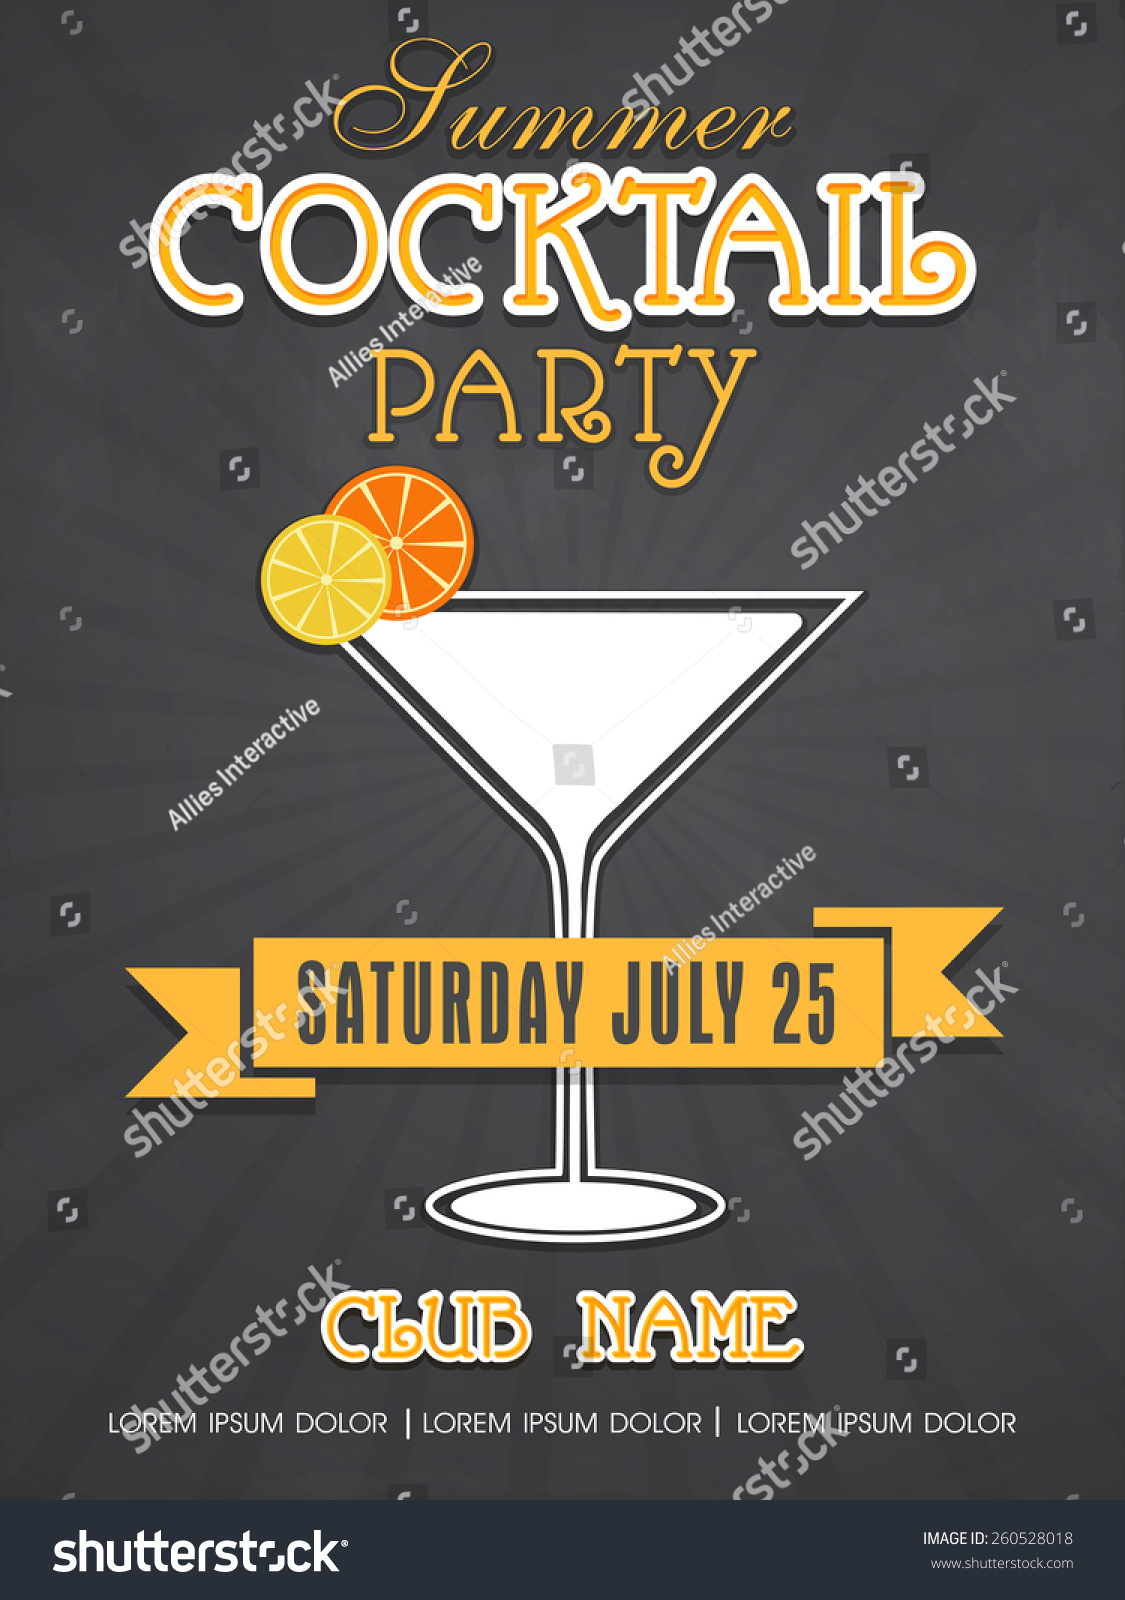 Stylish Summer Cocktail Party Invitation Card Vector – Coctail Party Invitation